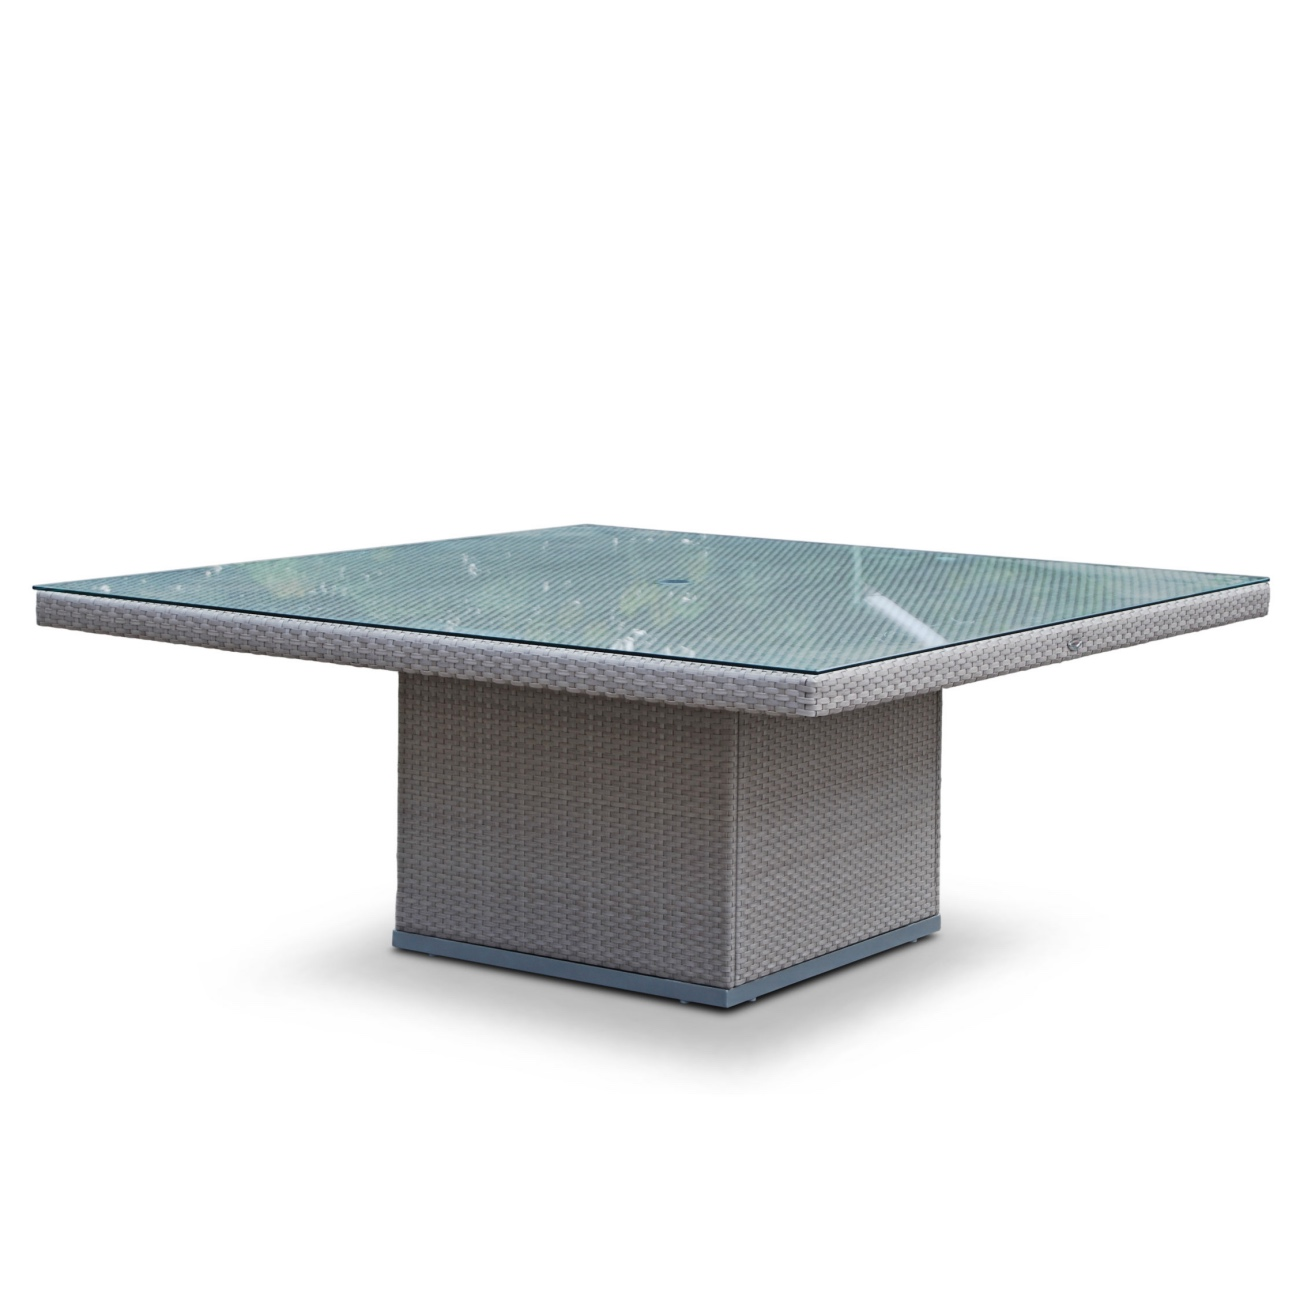 Strange Skyline Pacific Square Table Seats 12 Gmtry Best Dining Table And Chair Ideas Images Gmtryco